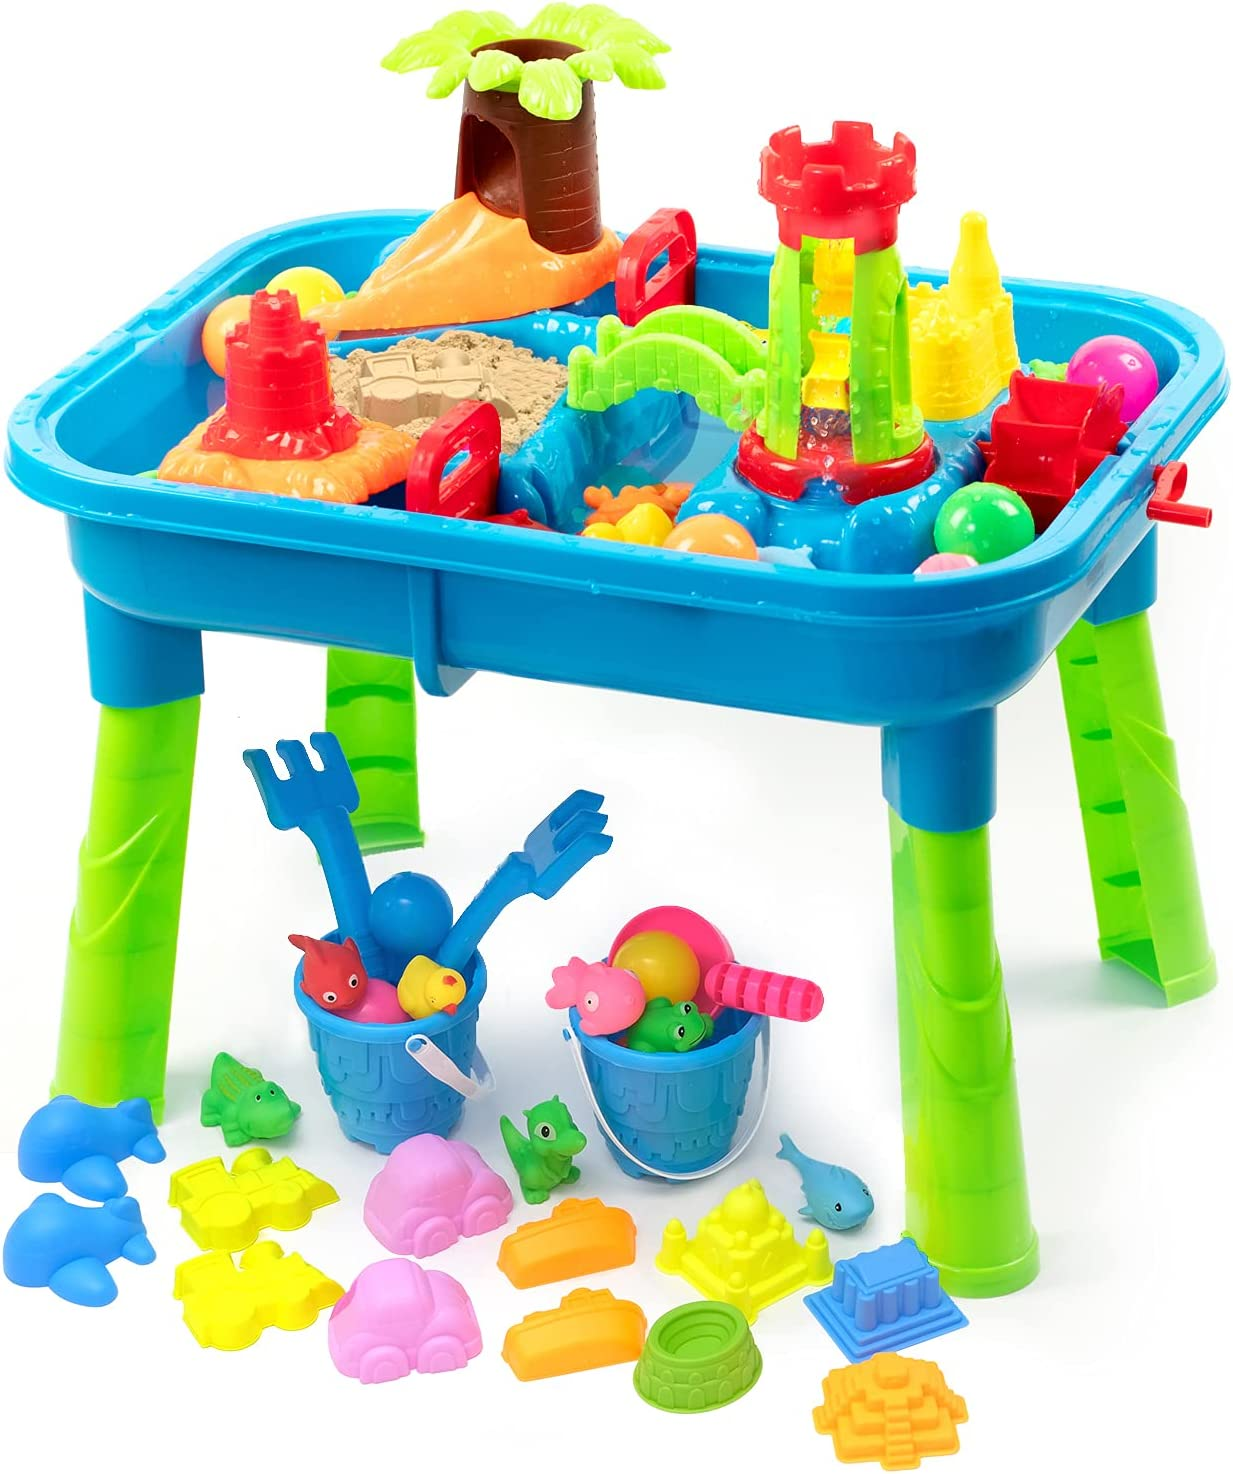 BFUNTOYS Water Table for Toddlers, Kids Play Sand & Water Table 2 in 1 Summer Beach Toys for Outside & Outdoor Activity, Birthday for Boys Girls Children (2021 Deluxe Version 57 Pcs)